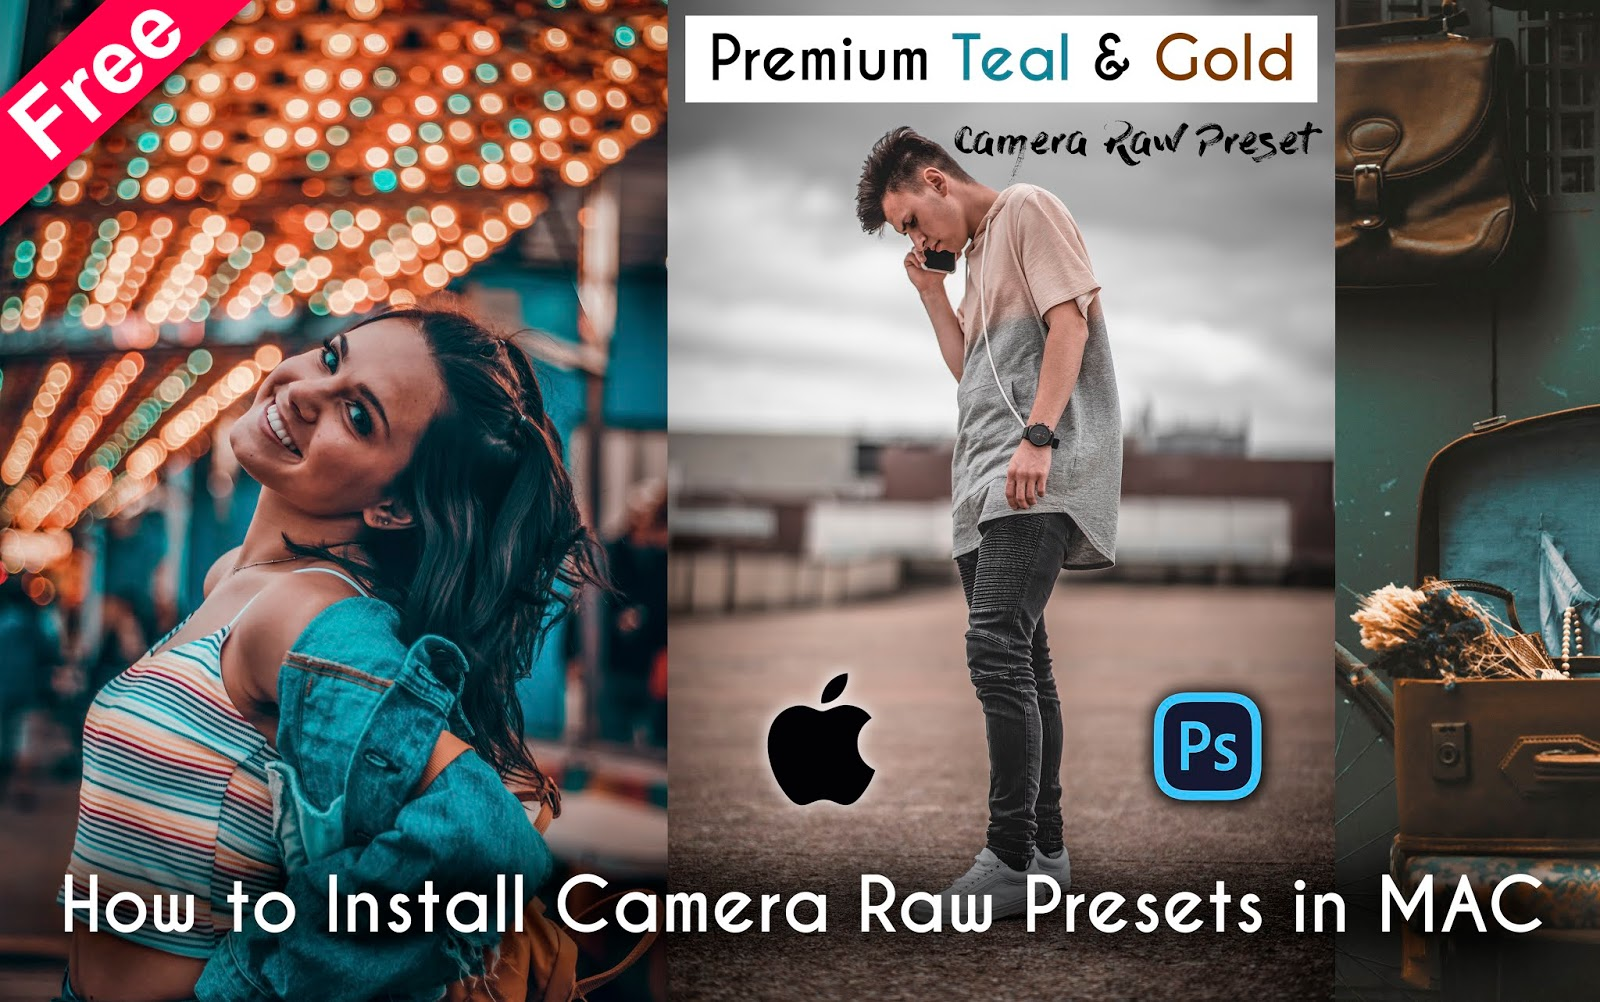 Download Premium Teal & Gold Camera Raw Presets for Free | How to Install Camera Raw Presets in MAC in Photoshop